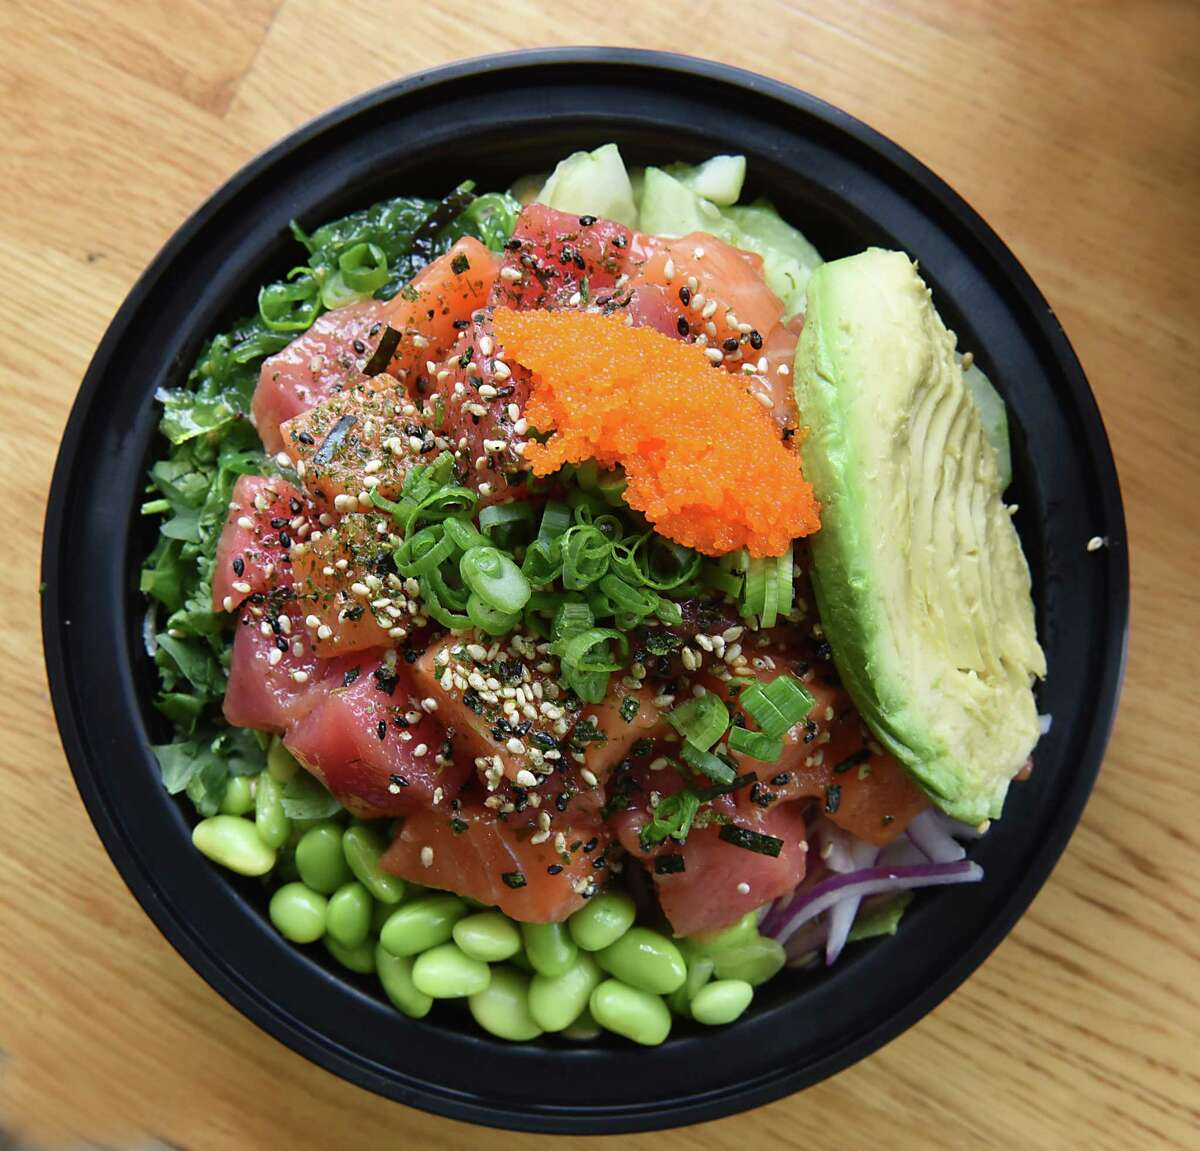 2-protein poke bowl at Bespoki Bowl at 122 Forth St. on Friday, Jan. 19, 2018 in Troy, N.Y. Half tuna and half salmon base, yuzu ponzu marinade, spicy mayo sauce, all the toppings including avocado. (Lori Van Buren/Times Union)